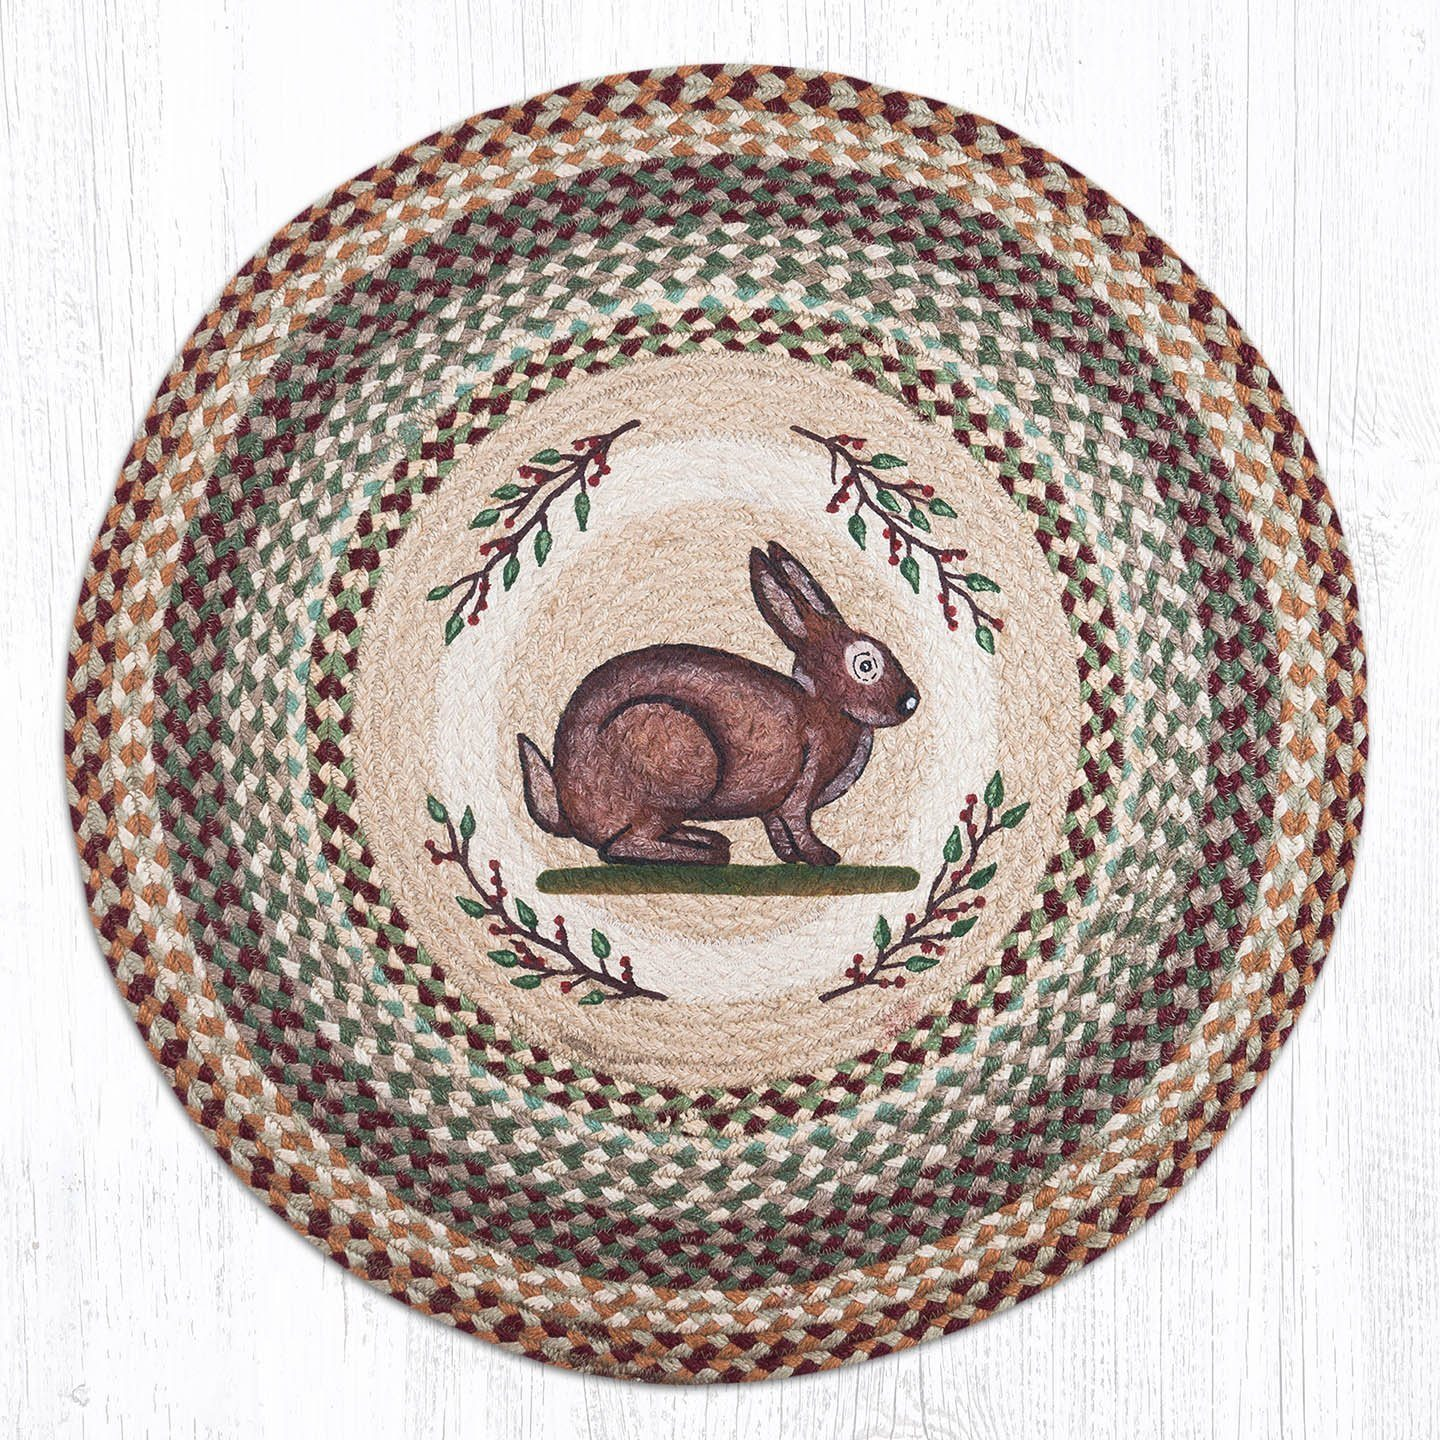 Vintage Rabbit Braided Jute Round Area Rug 413 Morning